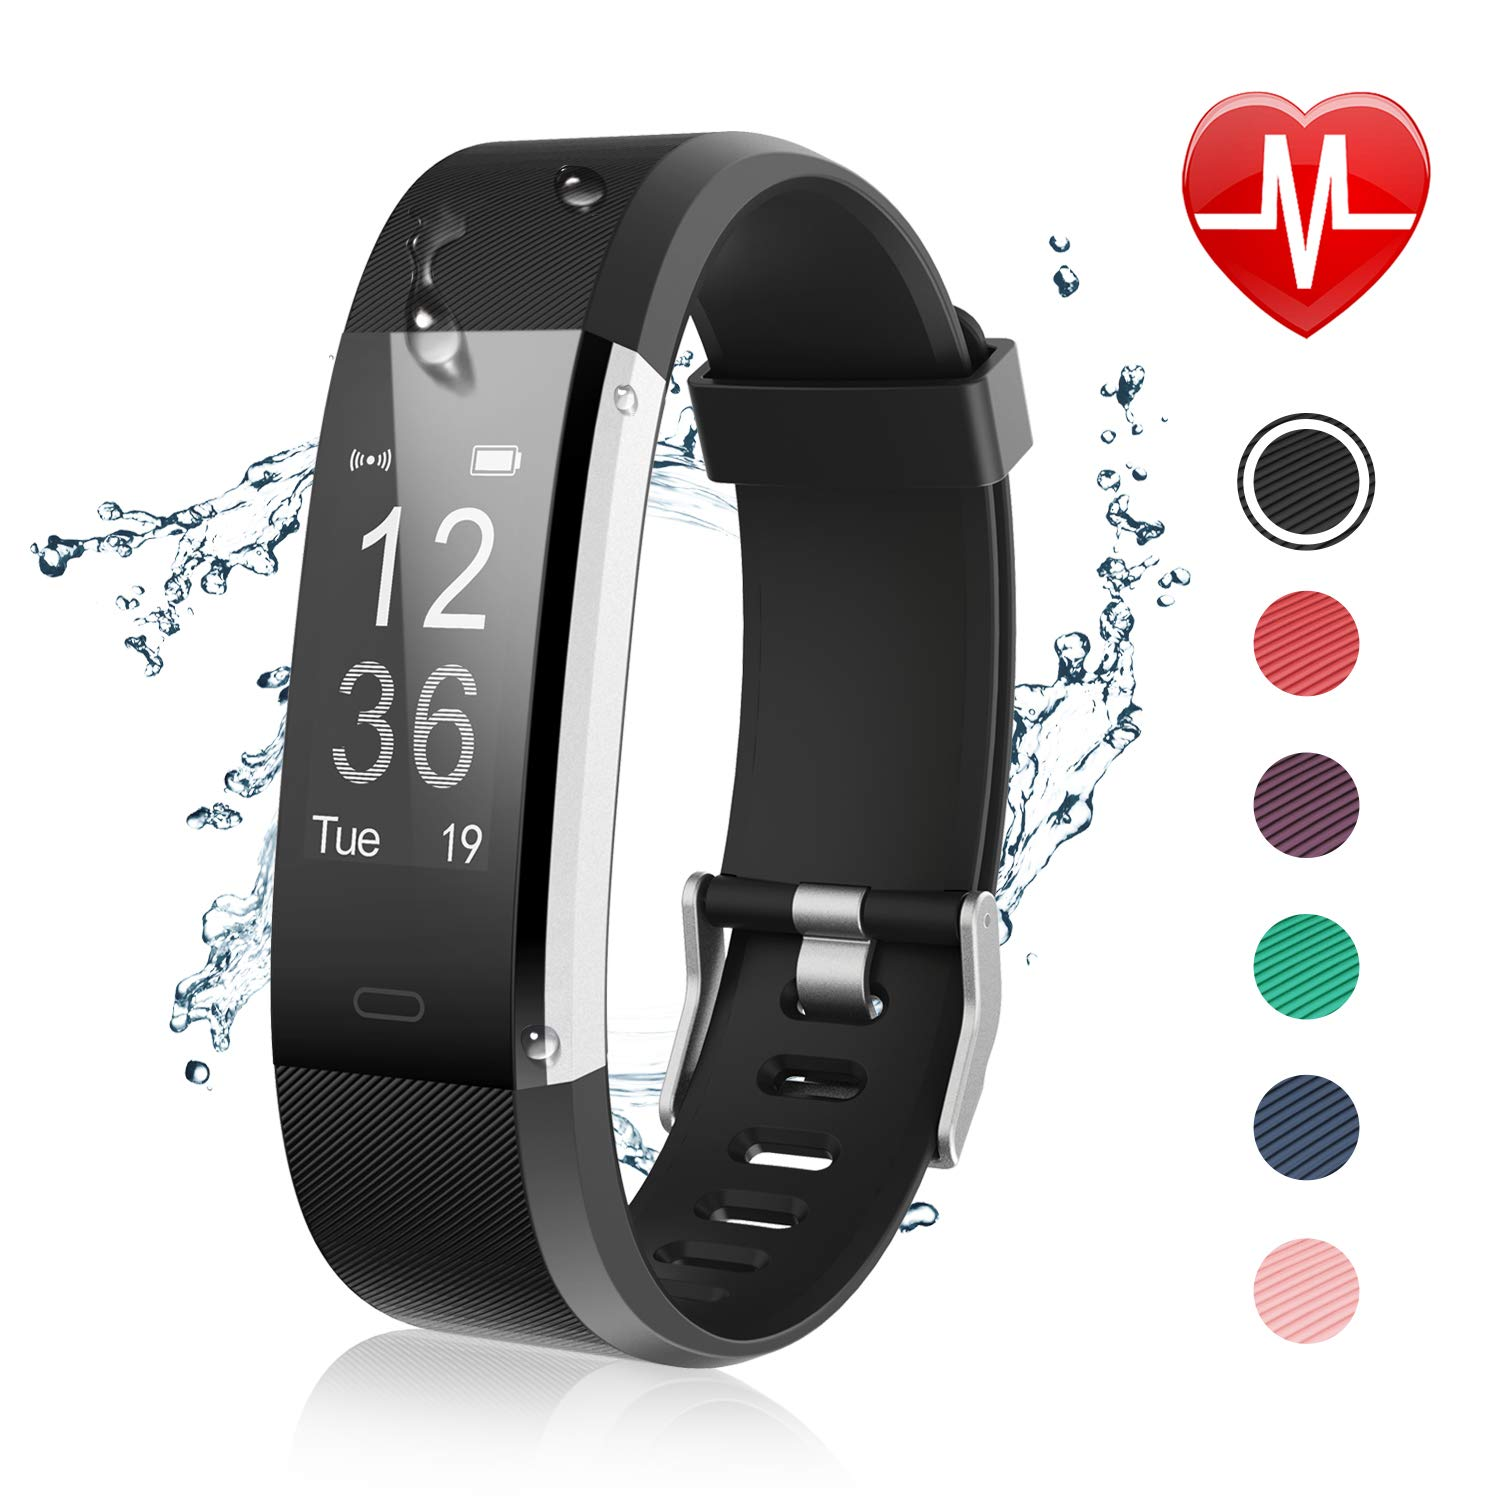 Letsfit Fitness Tracker with Heart Rate Monitor, IP67 Water Resistant Activity Tracker Watch, Smart Watch with Calorie Counter, Pedometer Watch for Kids Women and Men by Letsfit